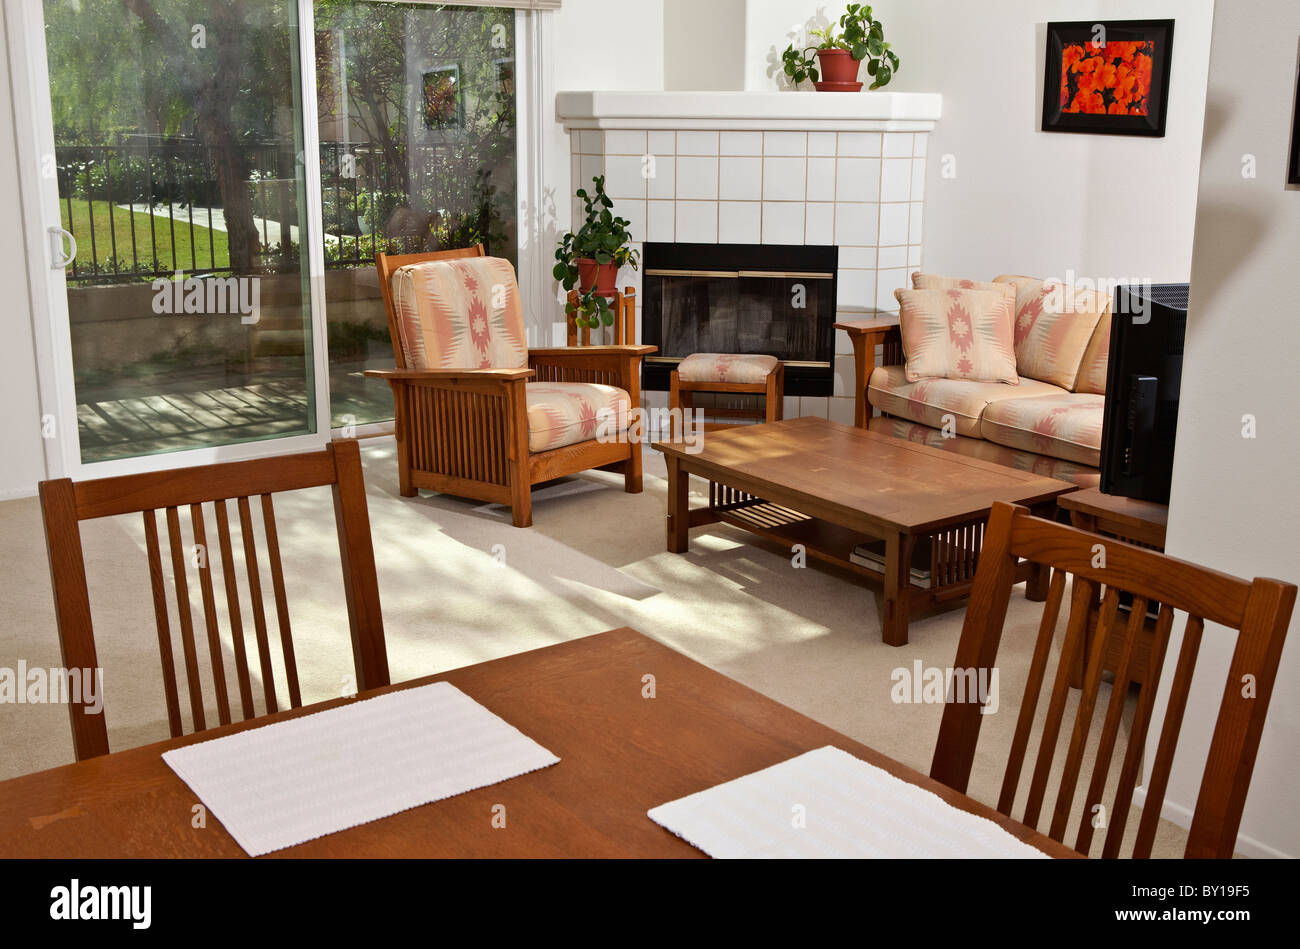 Bright, sunny, California condo living room. The wall art (photos) are the photographer's work and are included - Stock Image